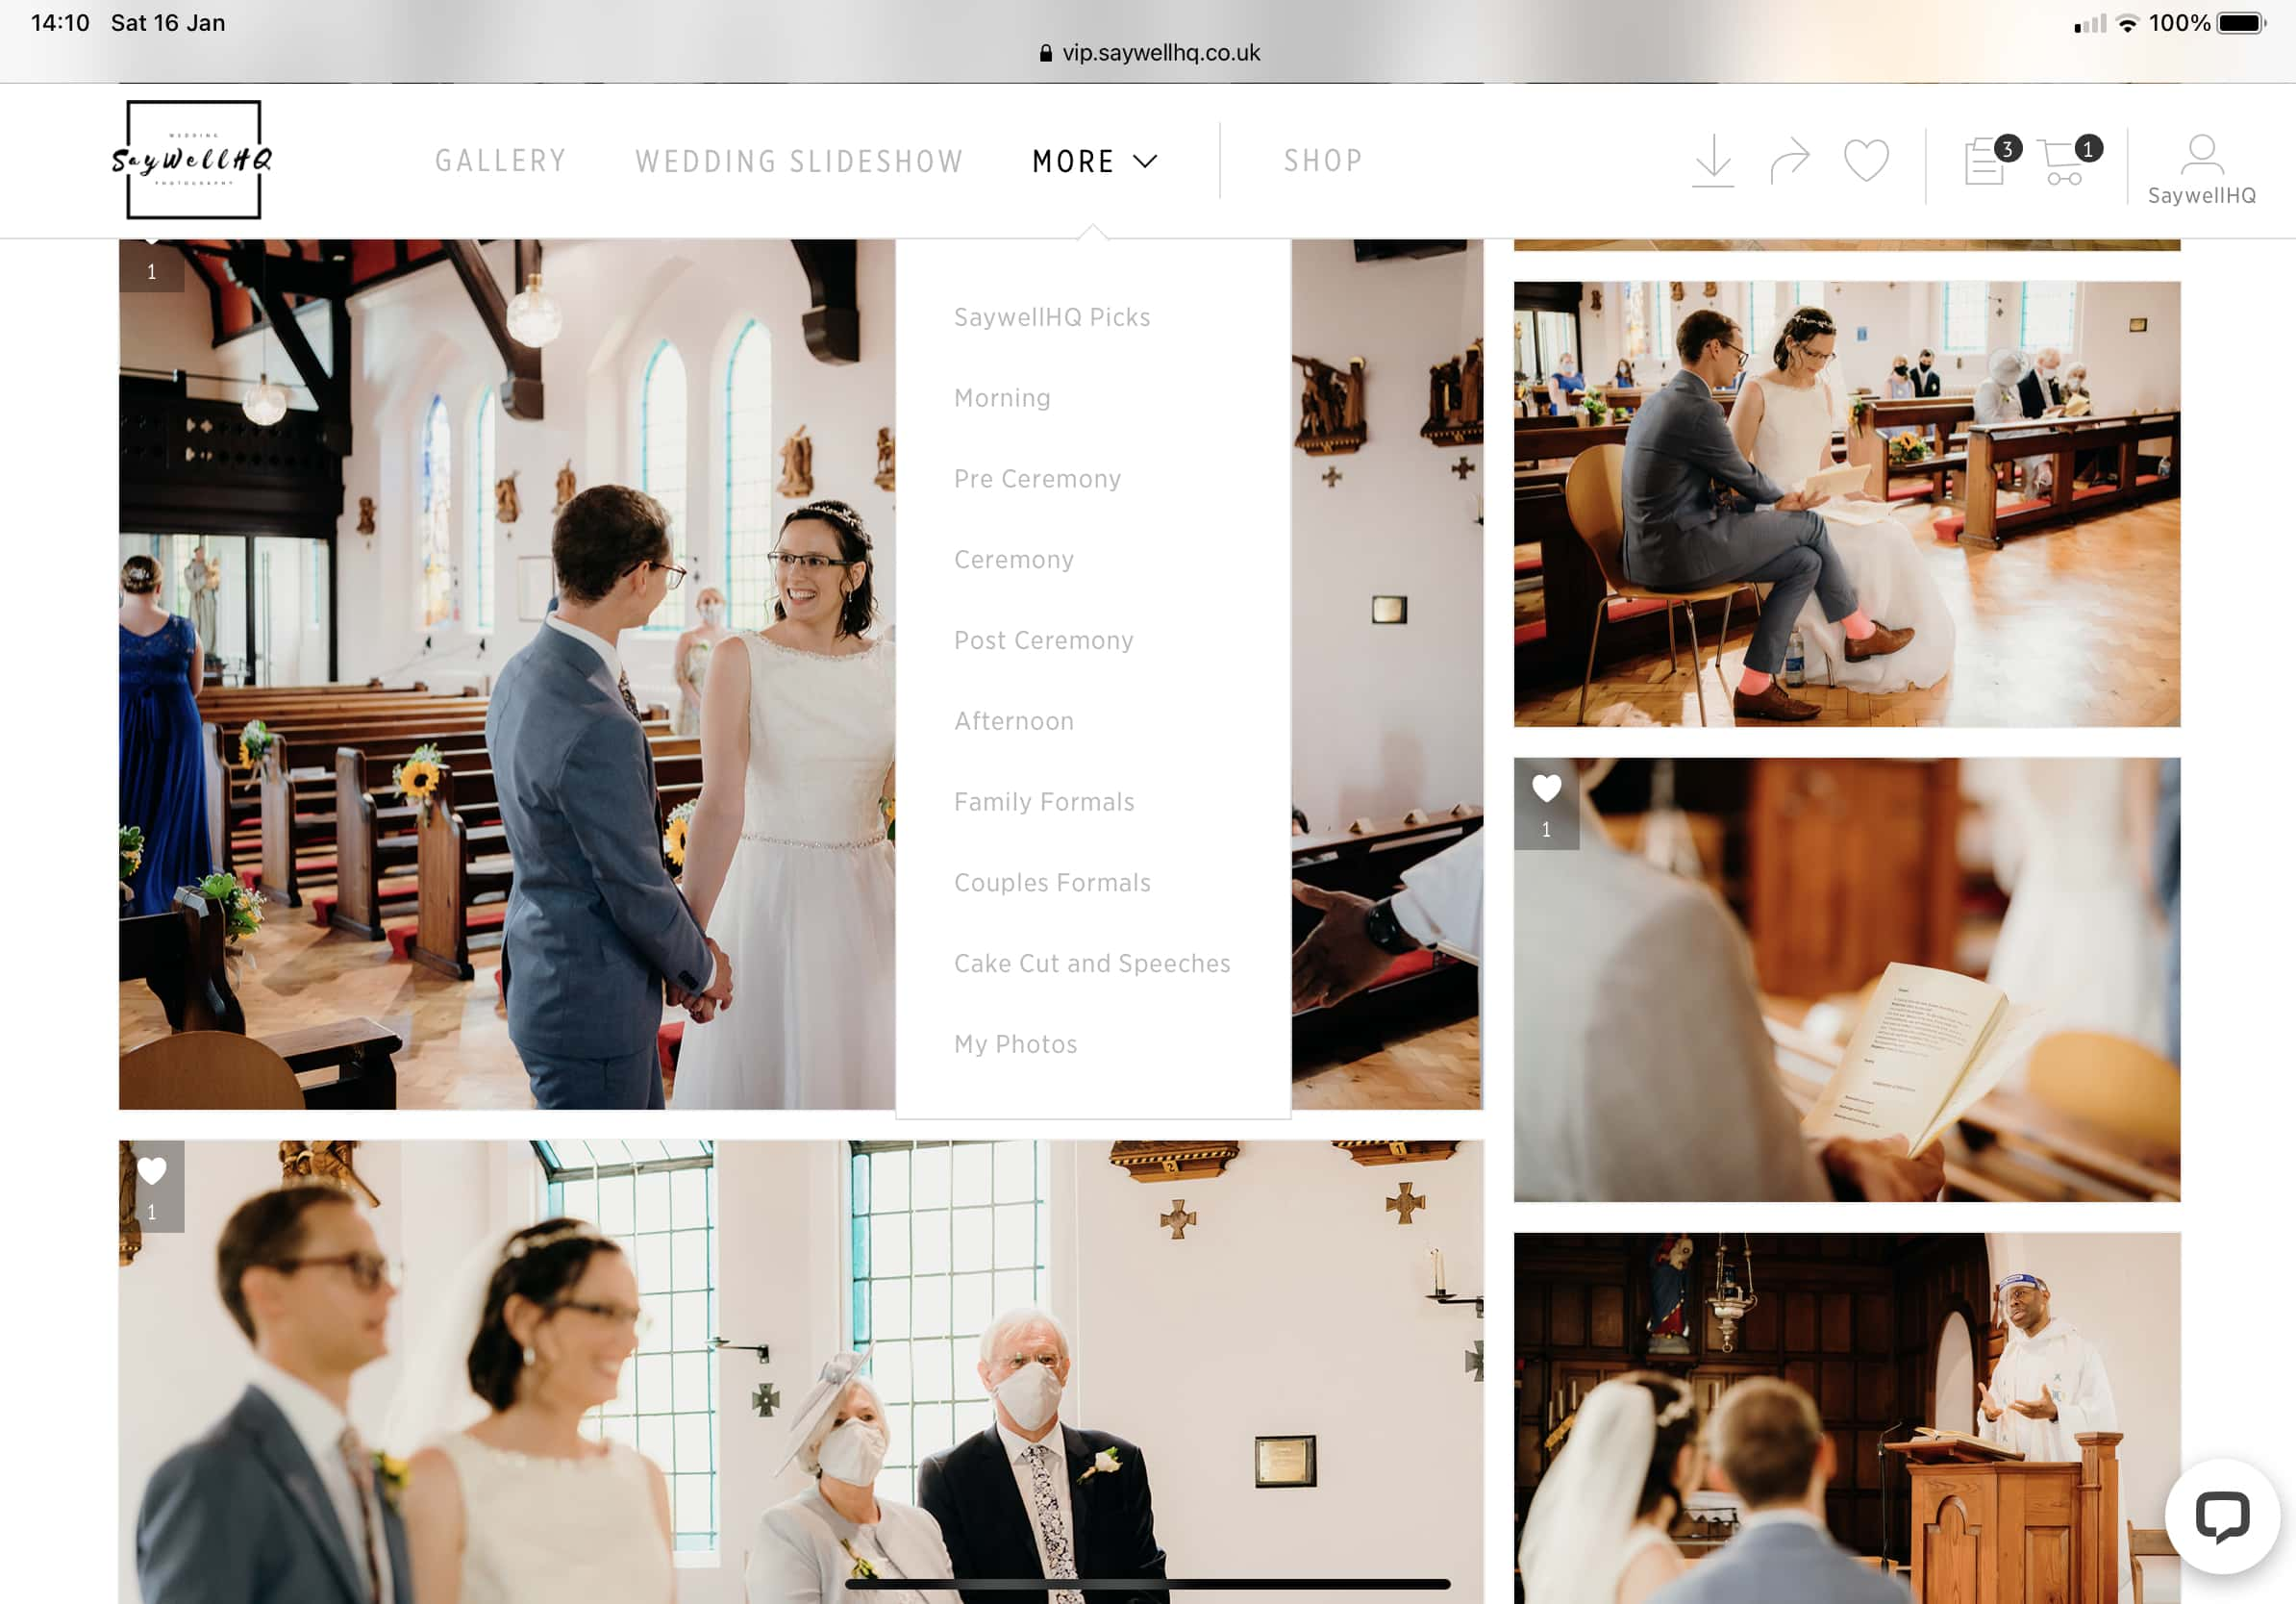 Nottingham wedding photographer - menu options in your wedding galleries